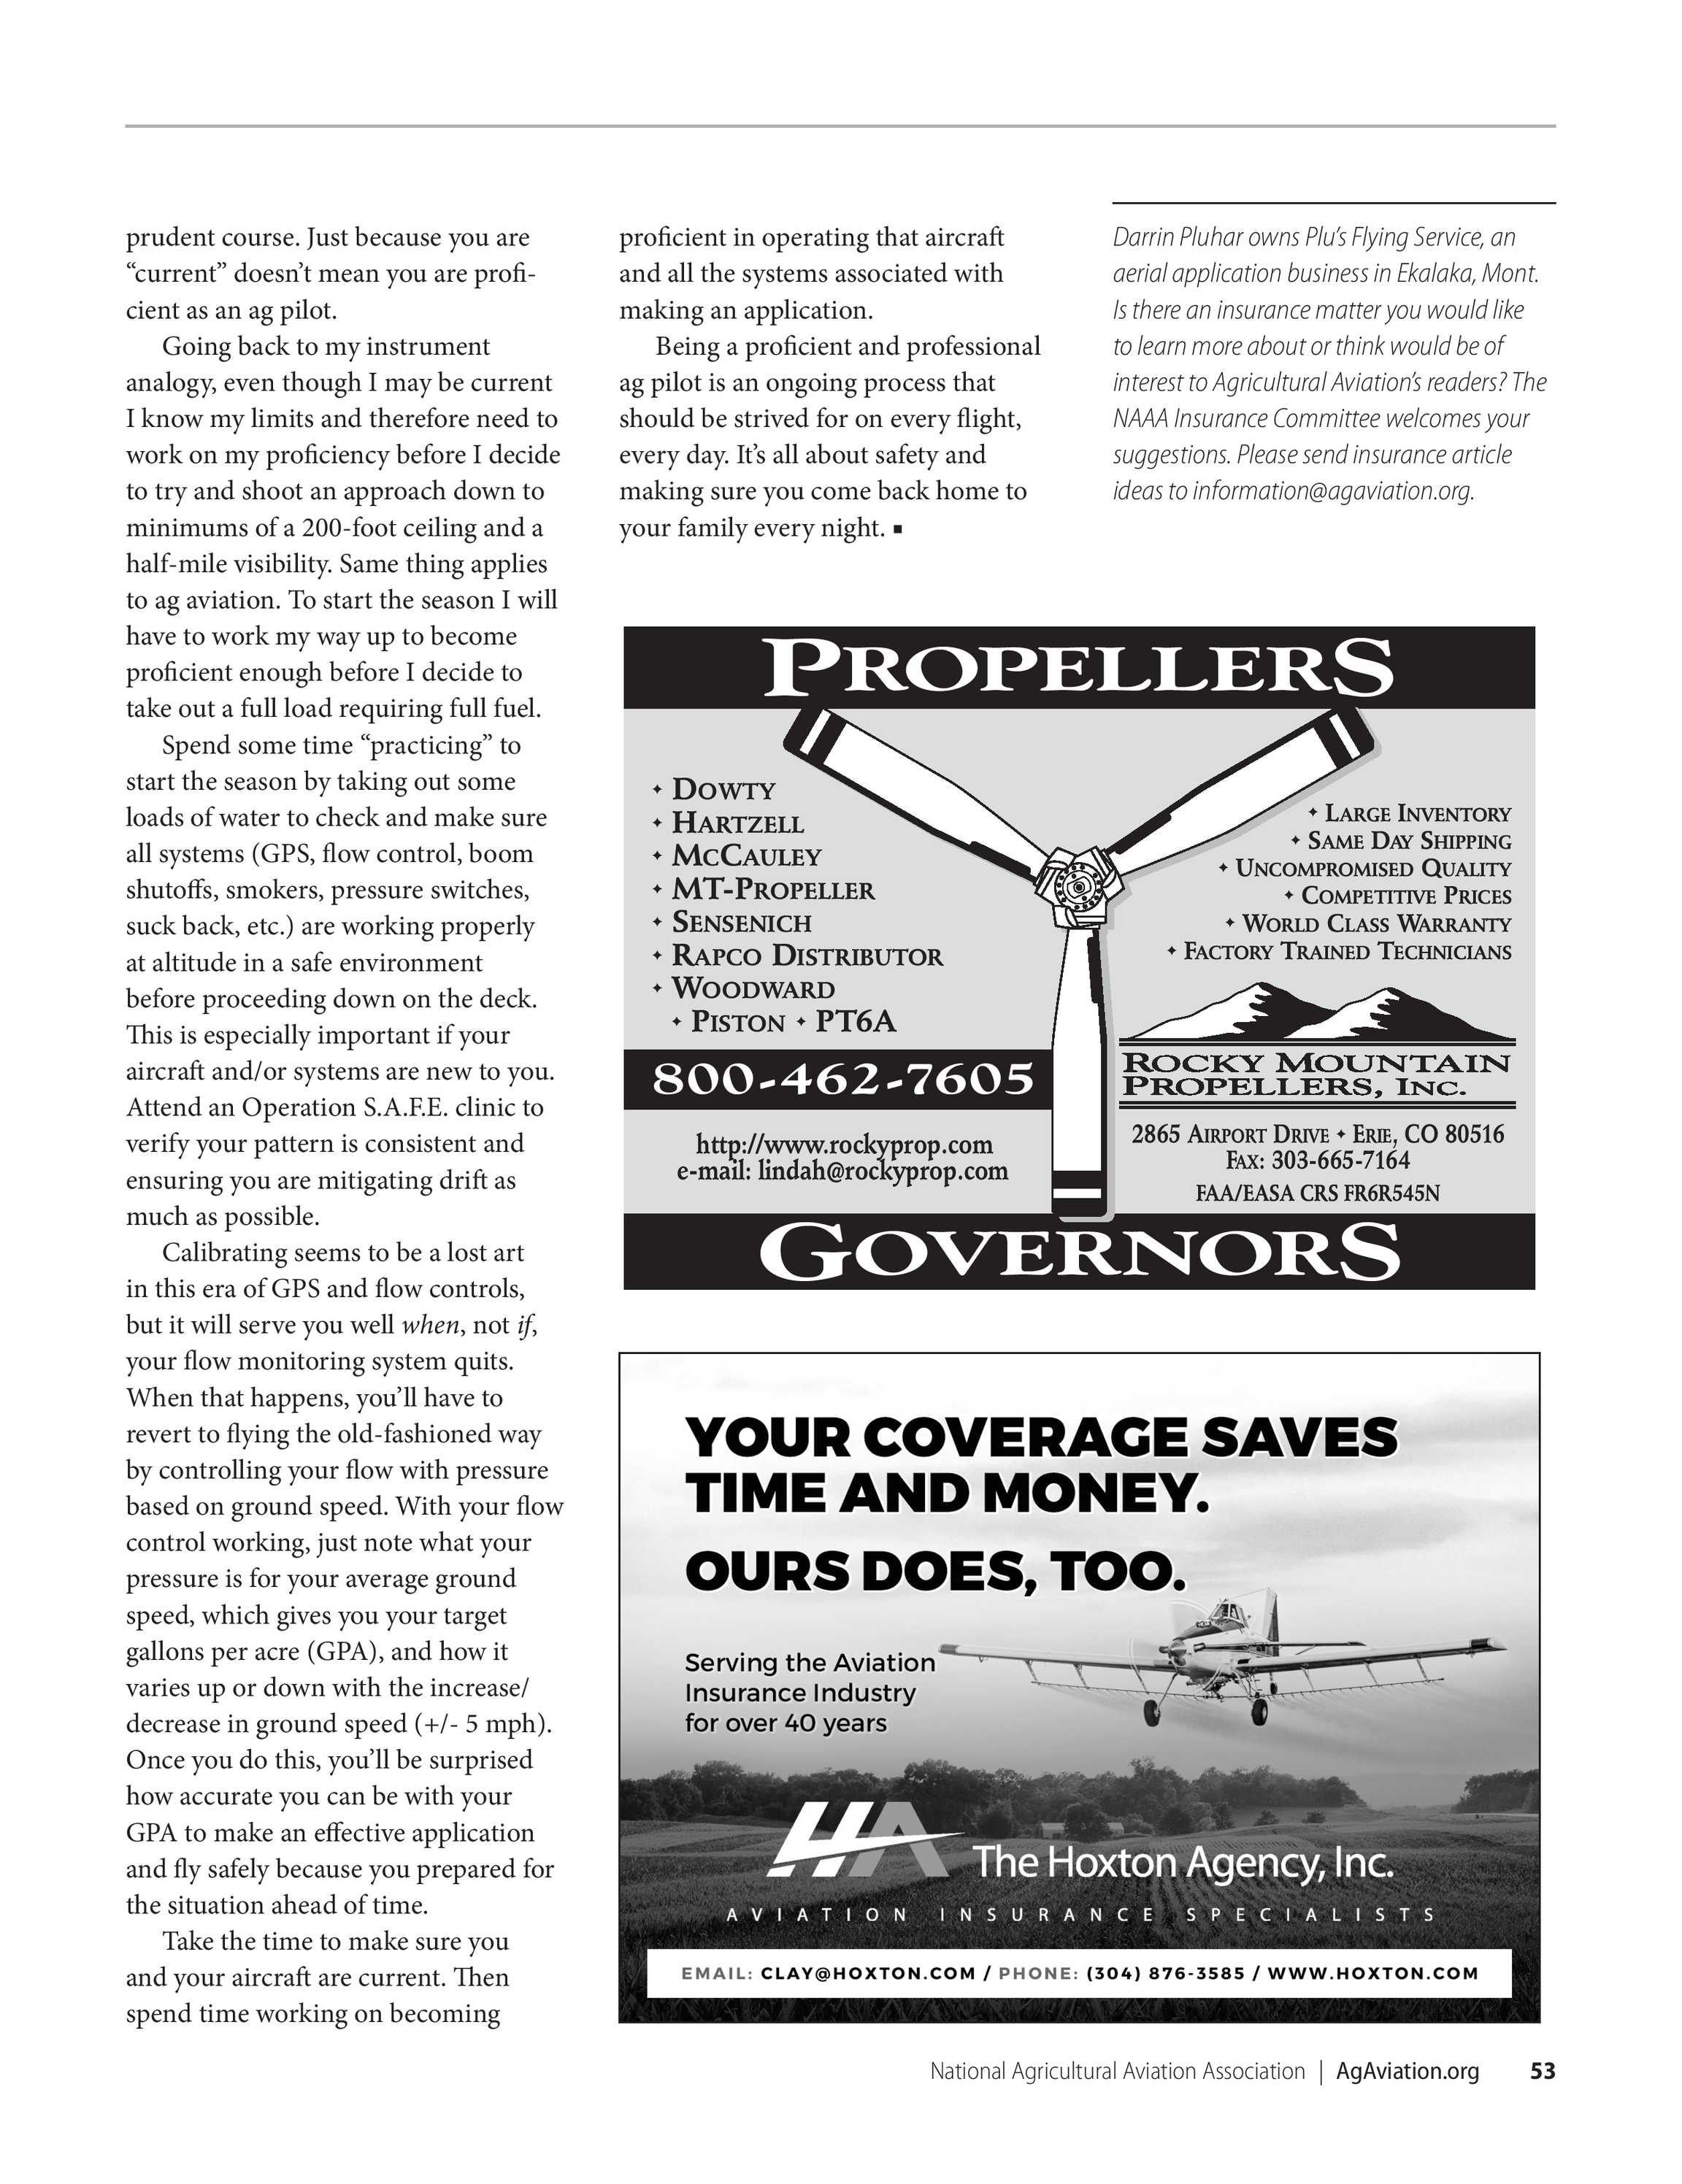 Agricultural Aviation - Summer 2019 - page 54